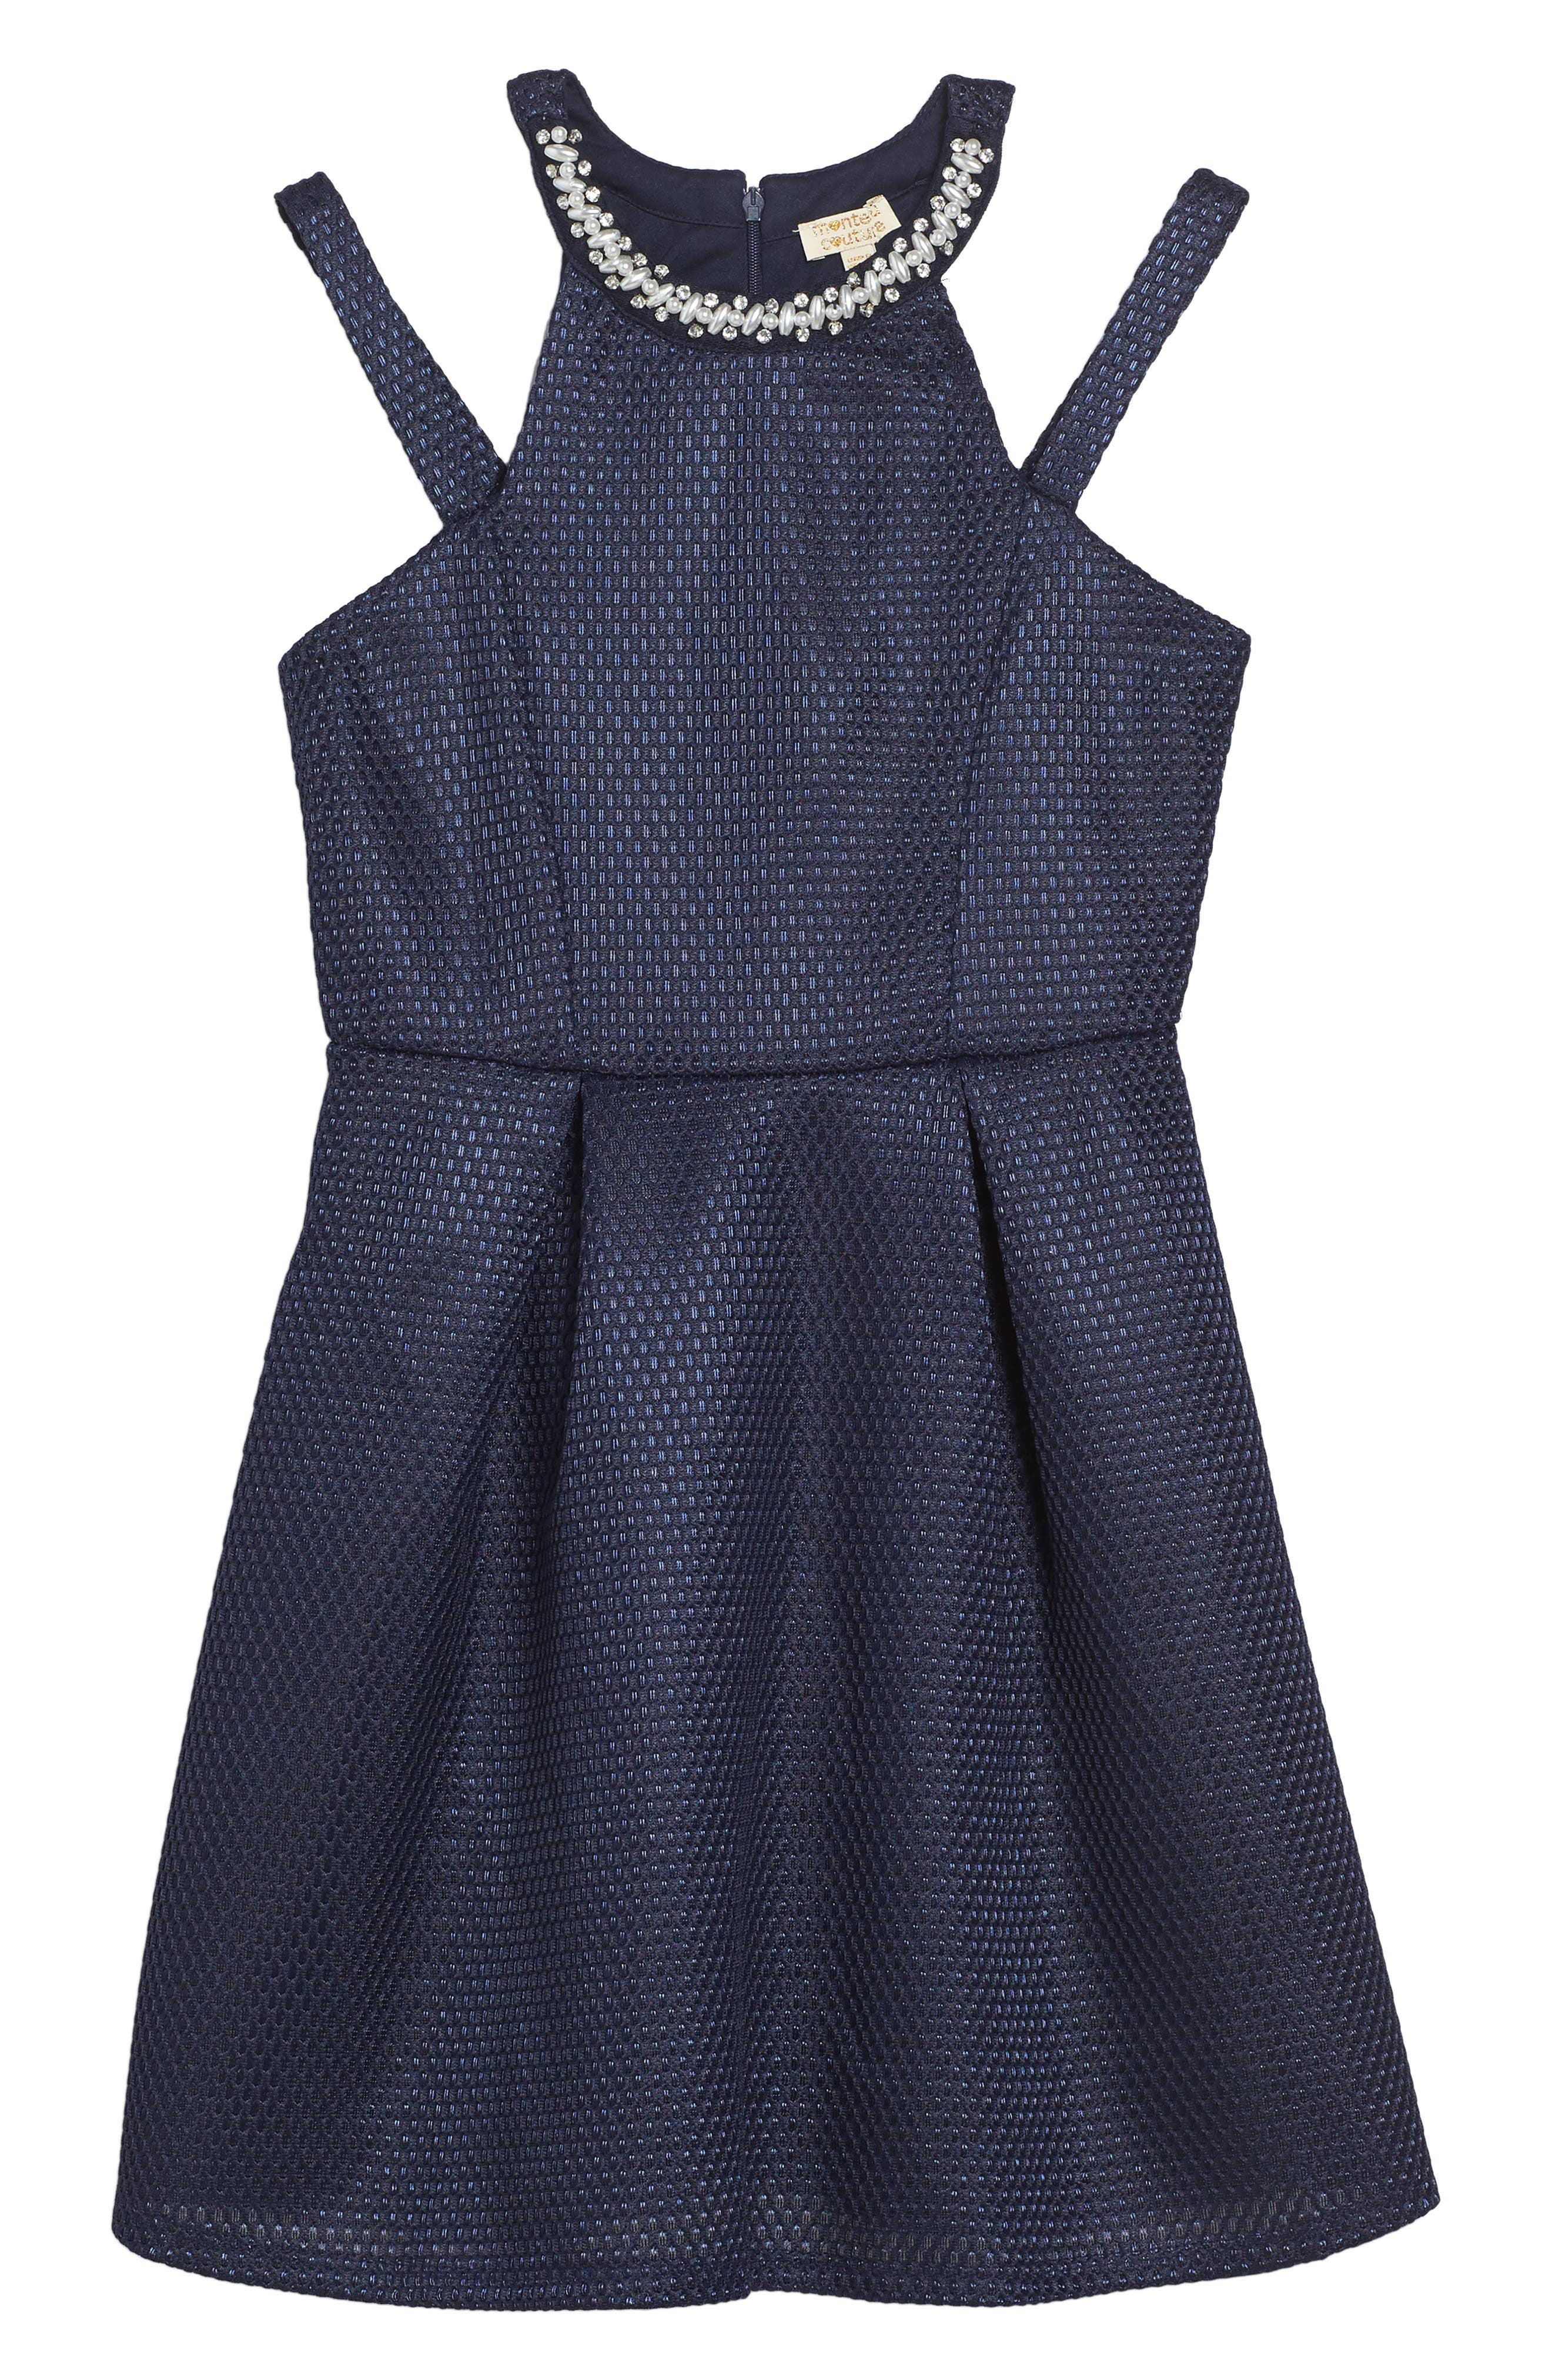 Girls\' Monteau Couture Special Occasions Clothing   Nordstrom